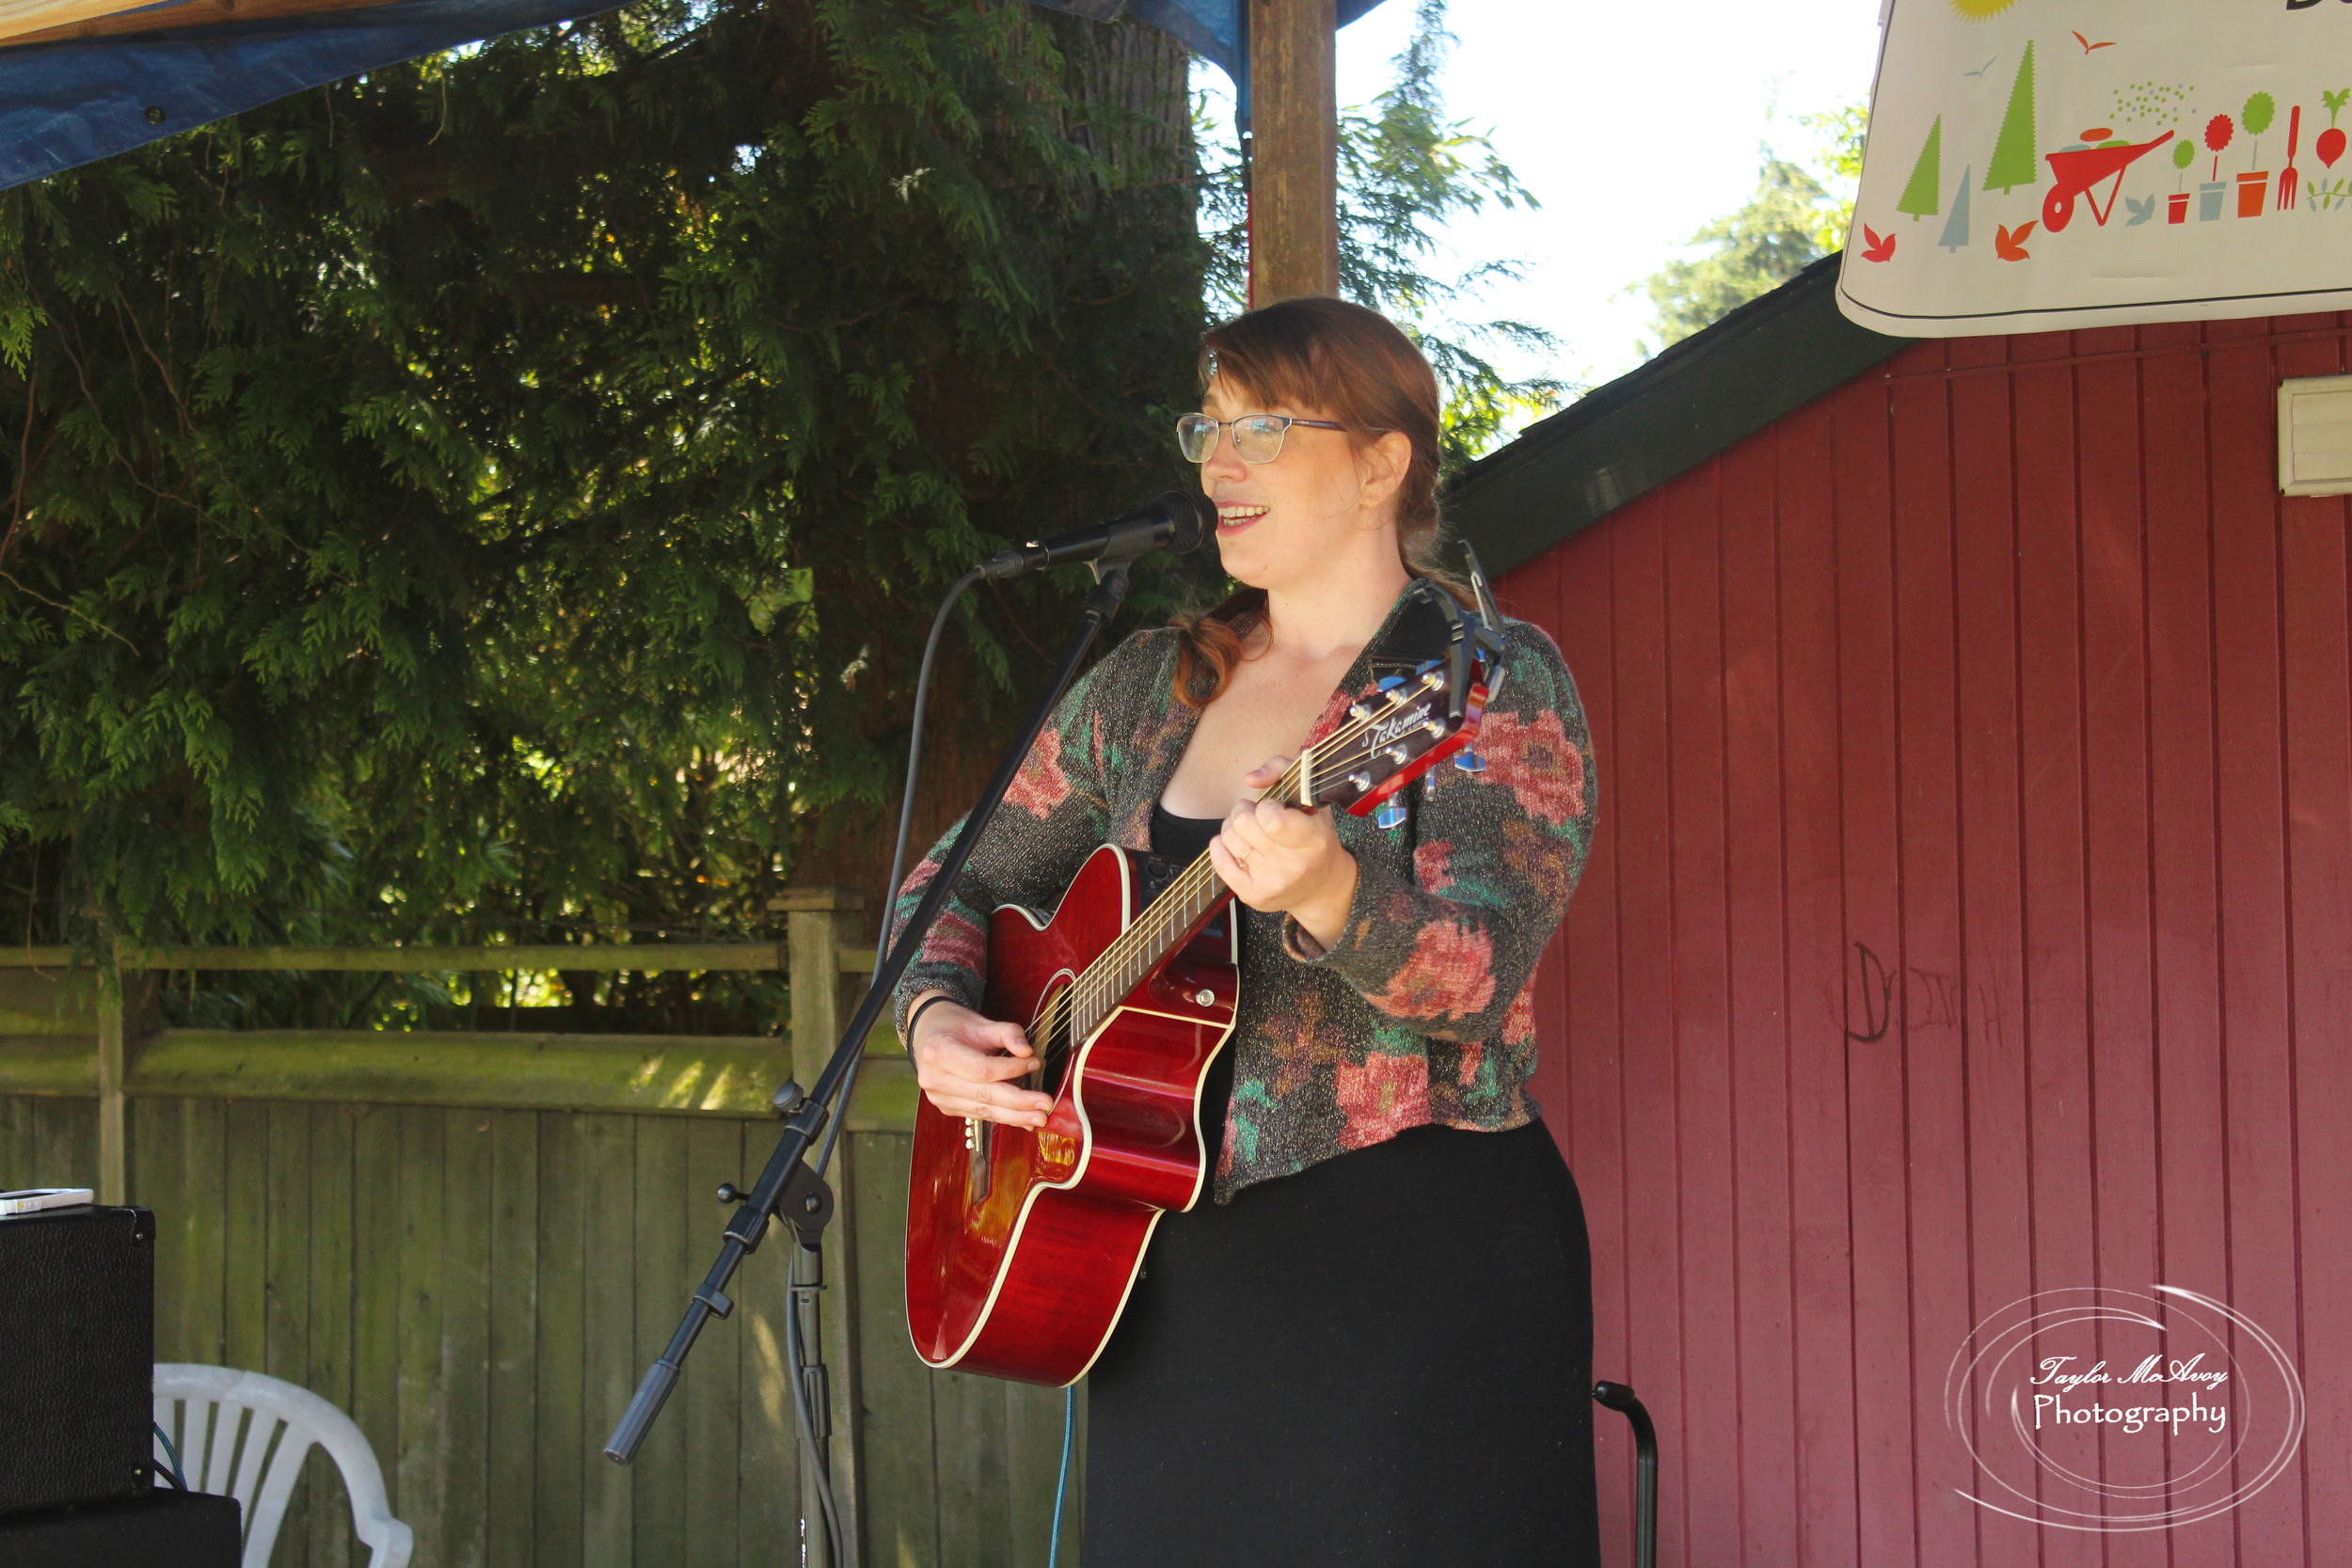 Musician Megan Larson fills the garden with music for all to enjoy.